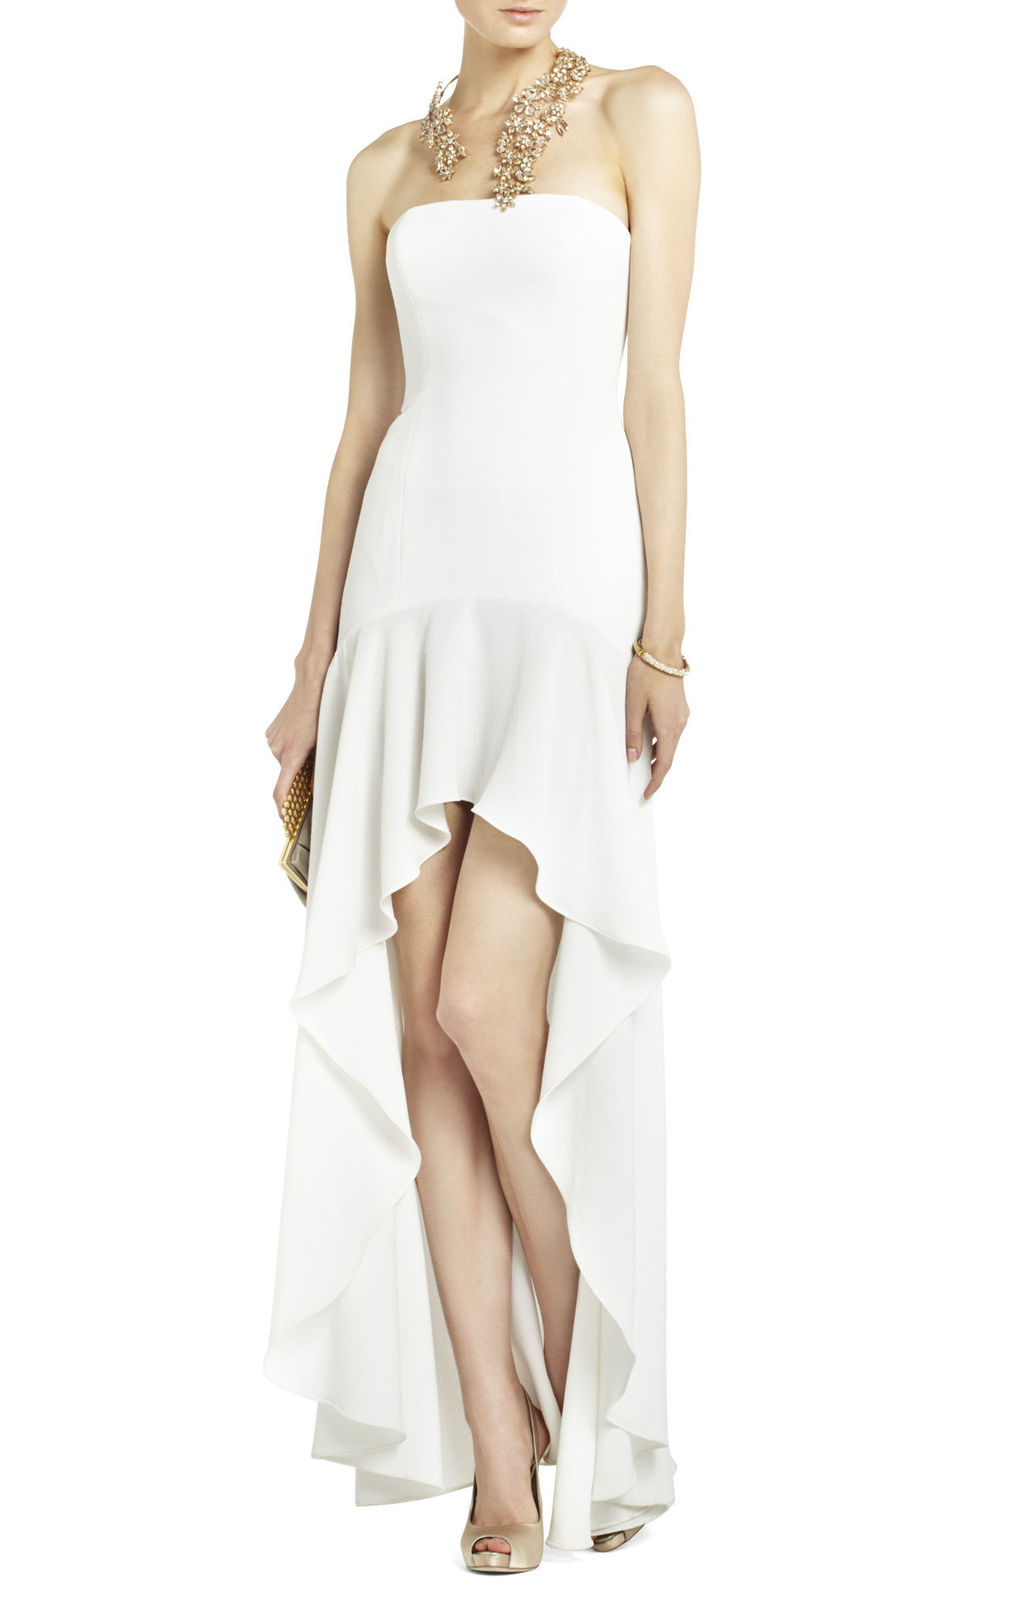 BCBG wedding dress Max Azria Bridal evangelina